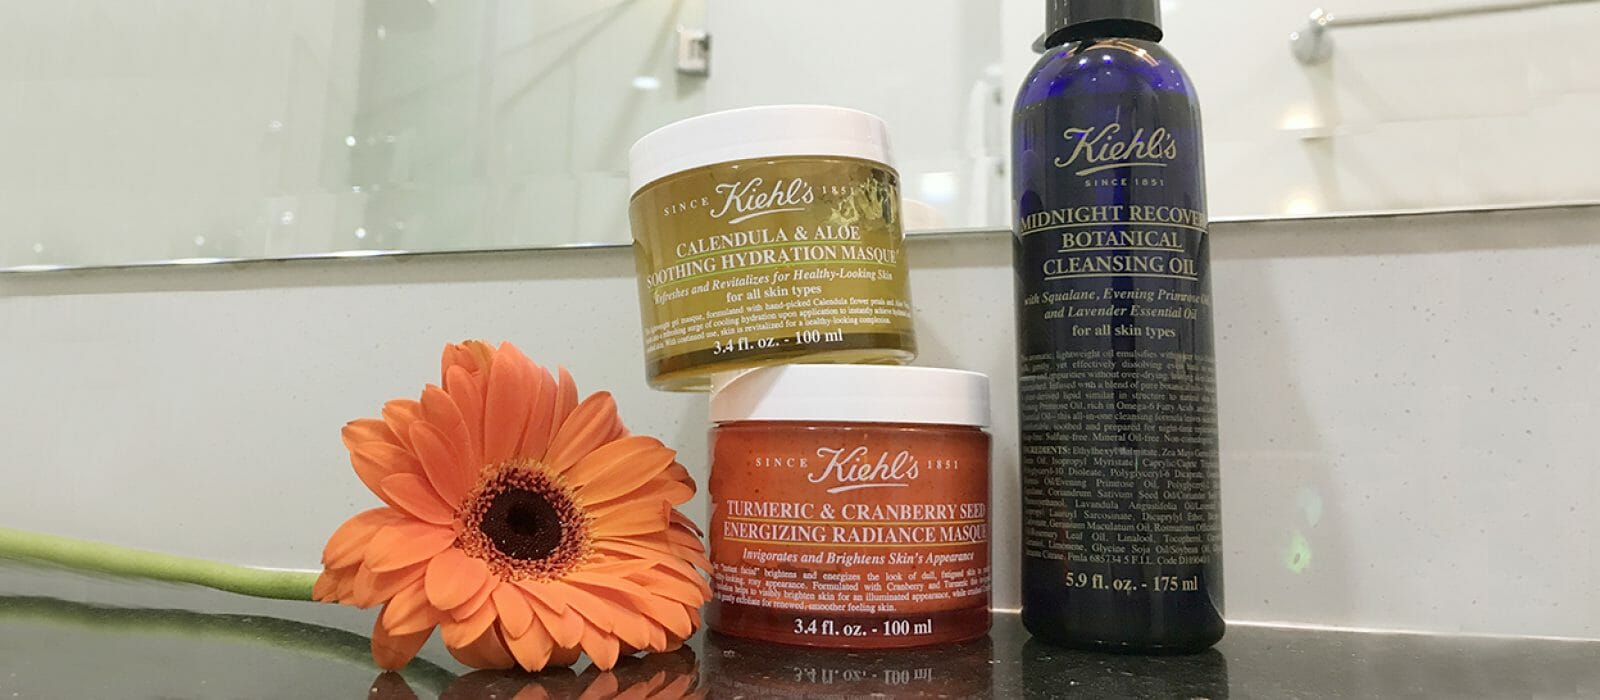 Review: Kiehl's Face Mask & Cleansing Oil